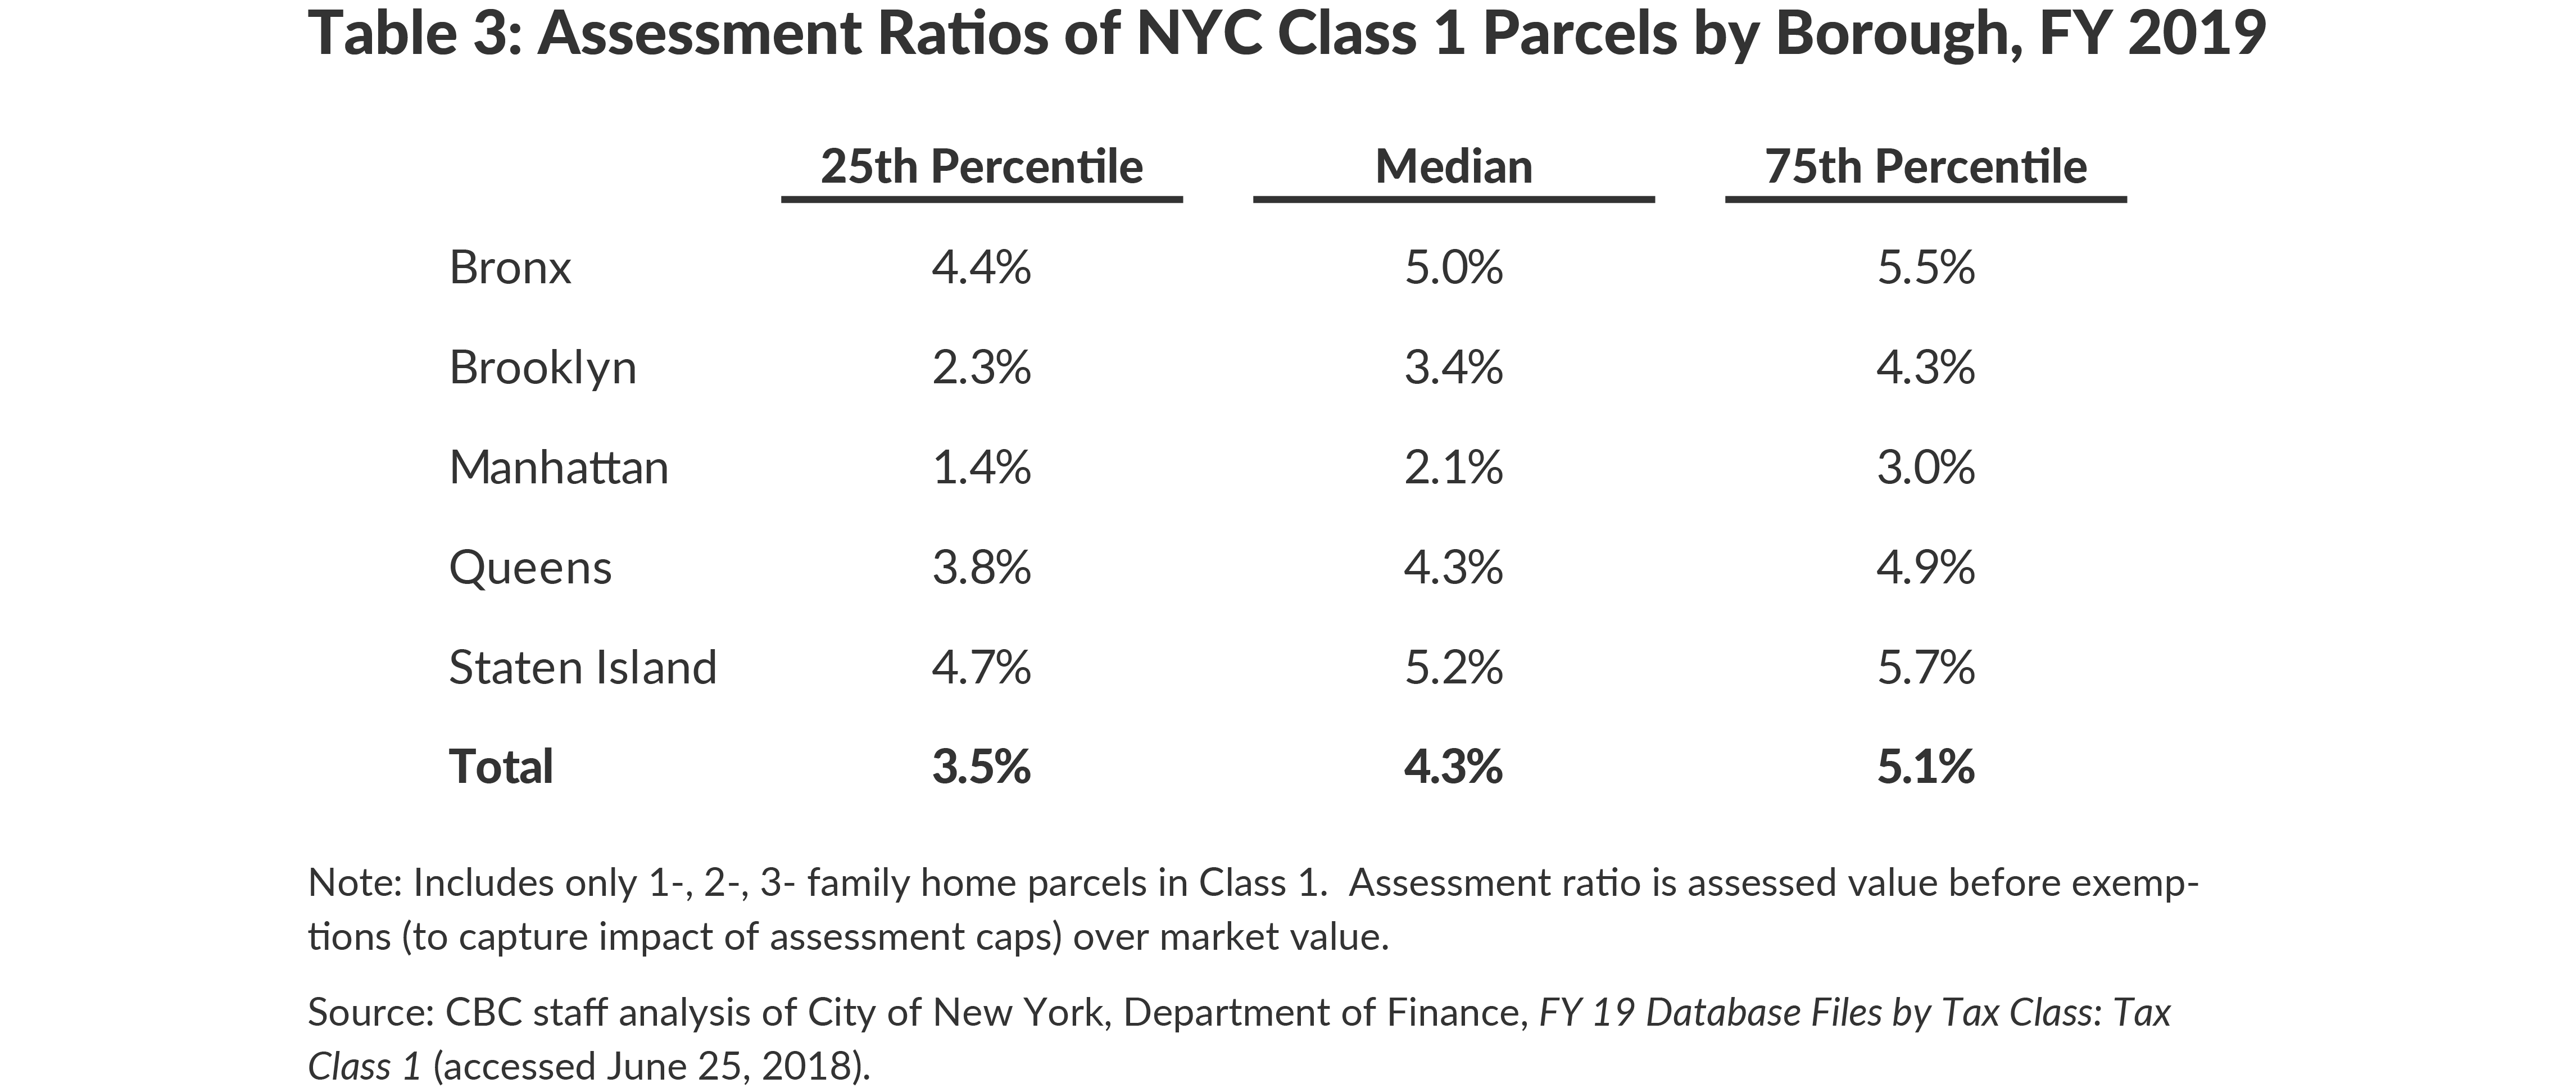 Table 3: Assessment Ratios of NYC Class 1 Parcels by Borough, FY 2019